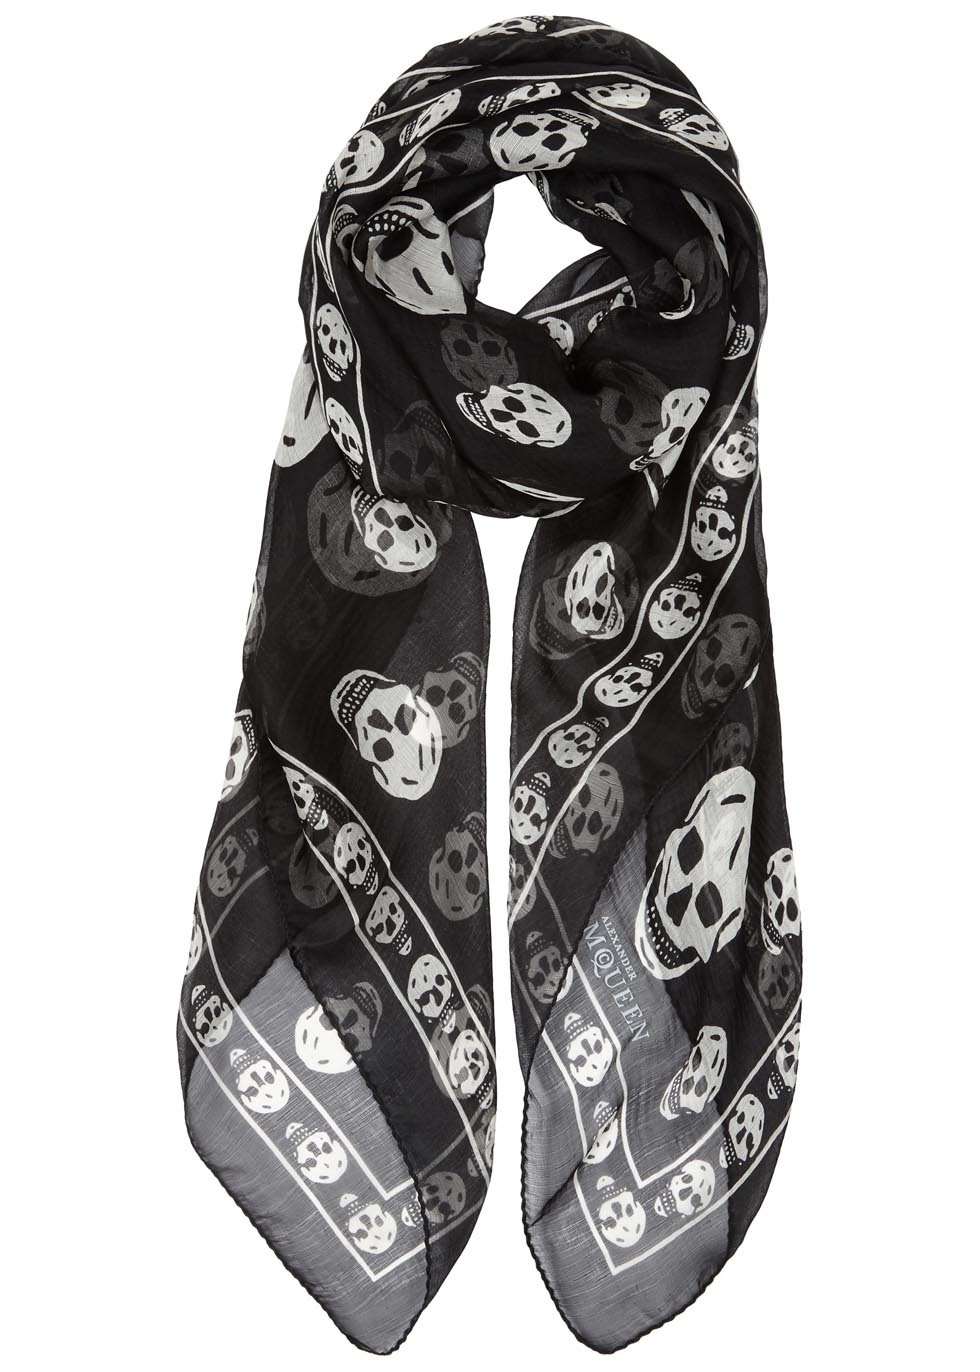 Black Skull Print Silk Chiffon Scarf - secondary colour: white; predominant colour: black; occasions: casual; type of pattern: light; style: regular; size: standard; material: silk; trends: monochrome; pattern: patterned/print; multicoloured: multicoloured; season: a/w 2016; wardrobe: highlight